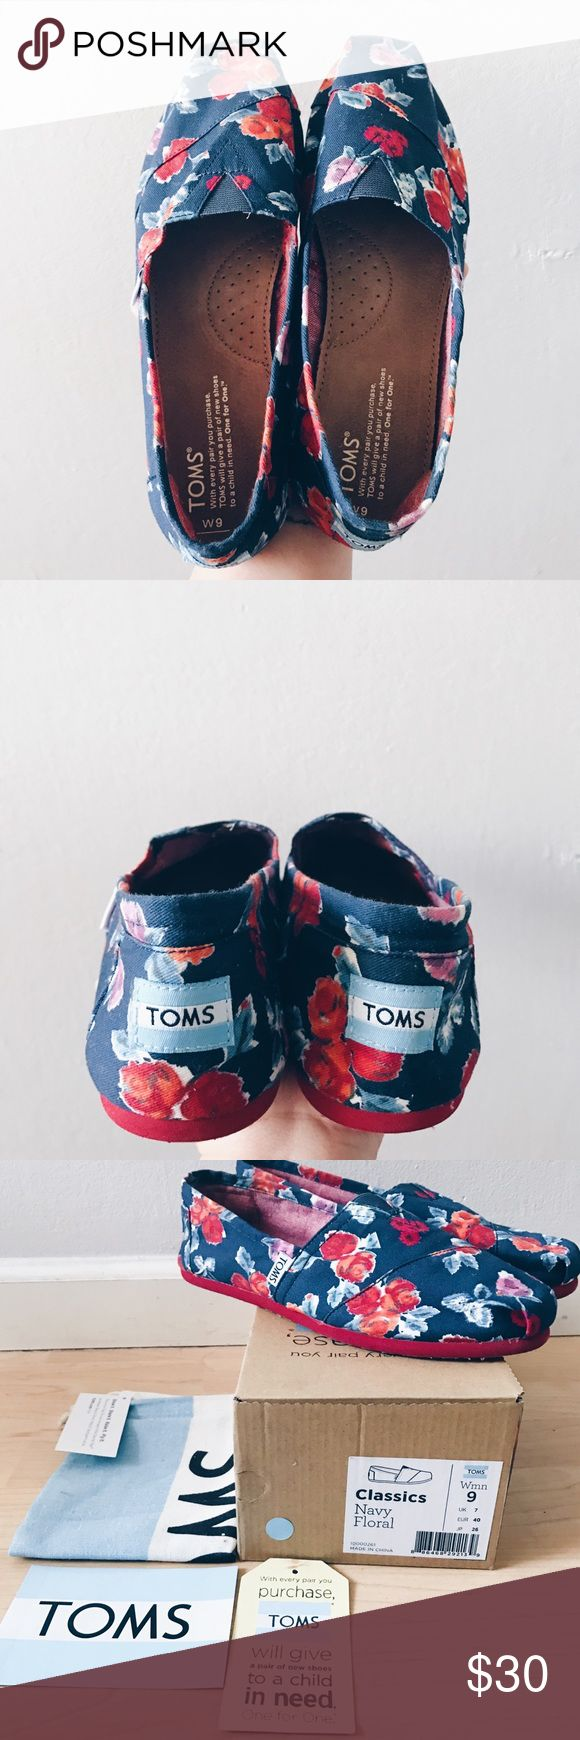 Floral TOMS *Worn Once* Navy Blue/Red Floral TOMS slip-ons. Includes: original box, tag, sticker, shoe bag. TOMS Shoes Flats & Loafers